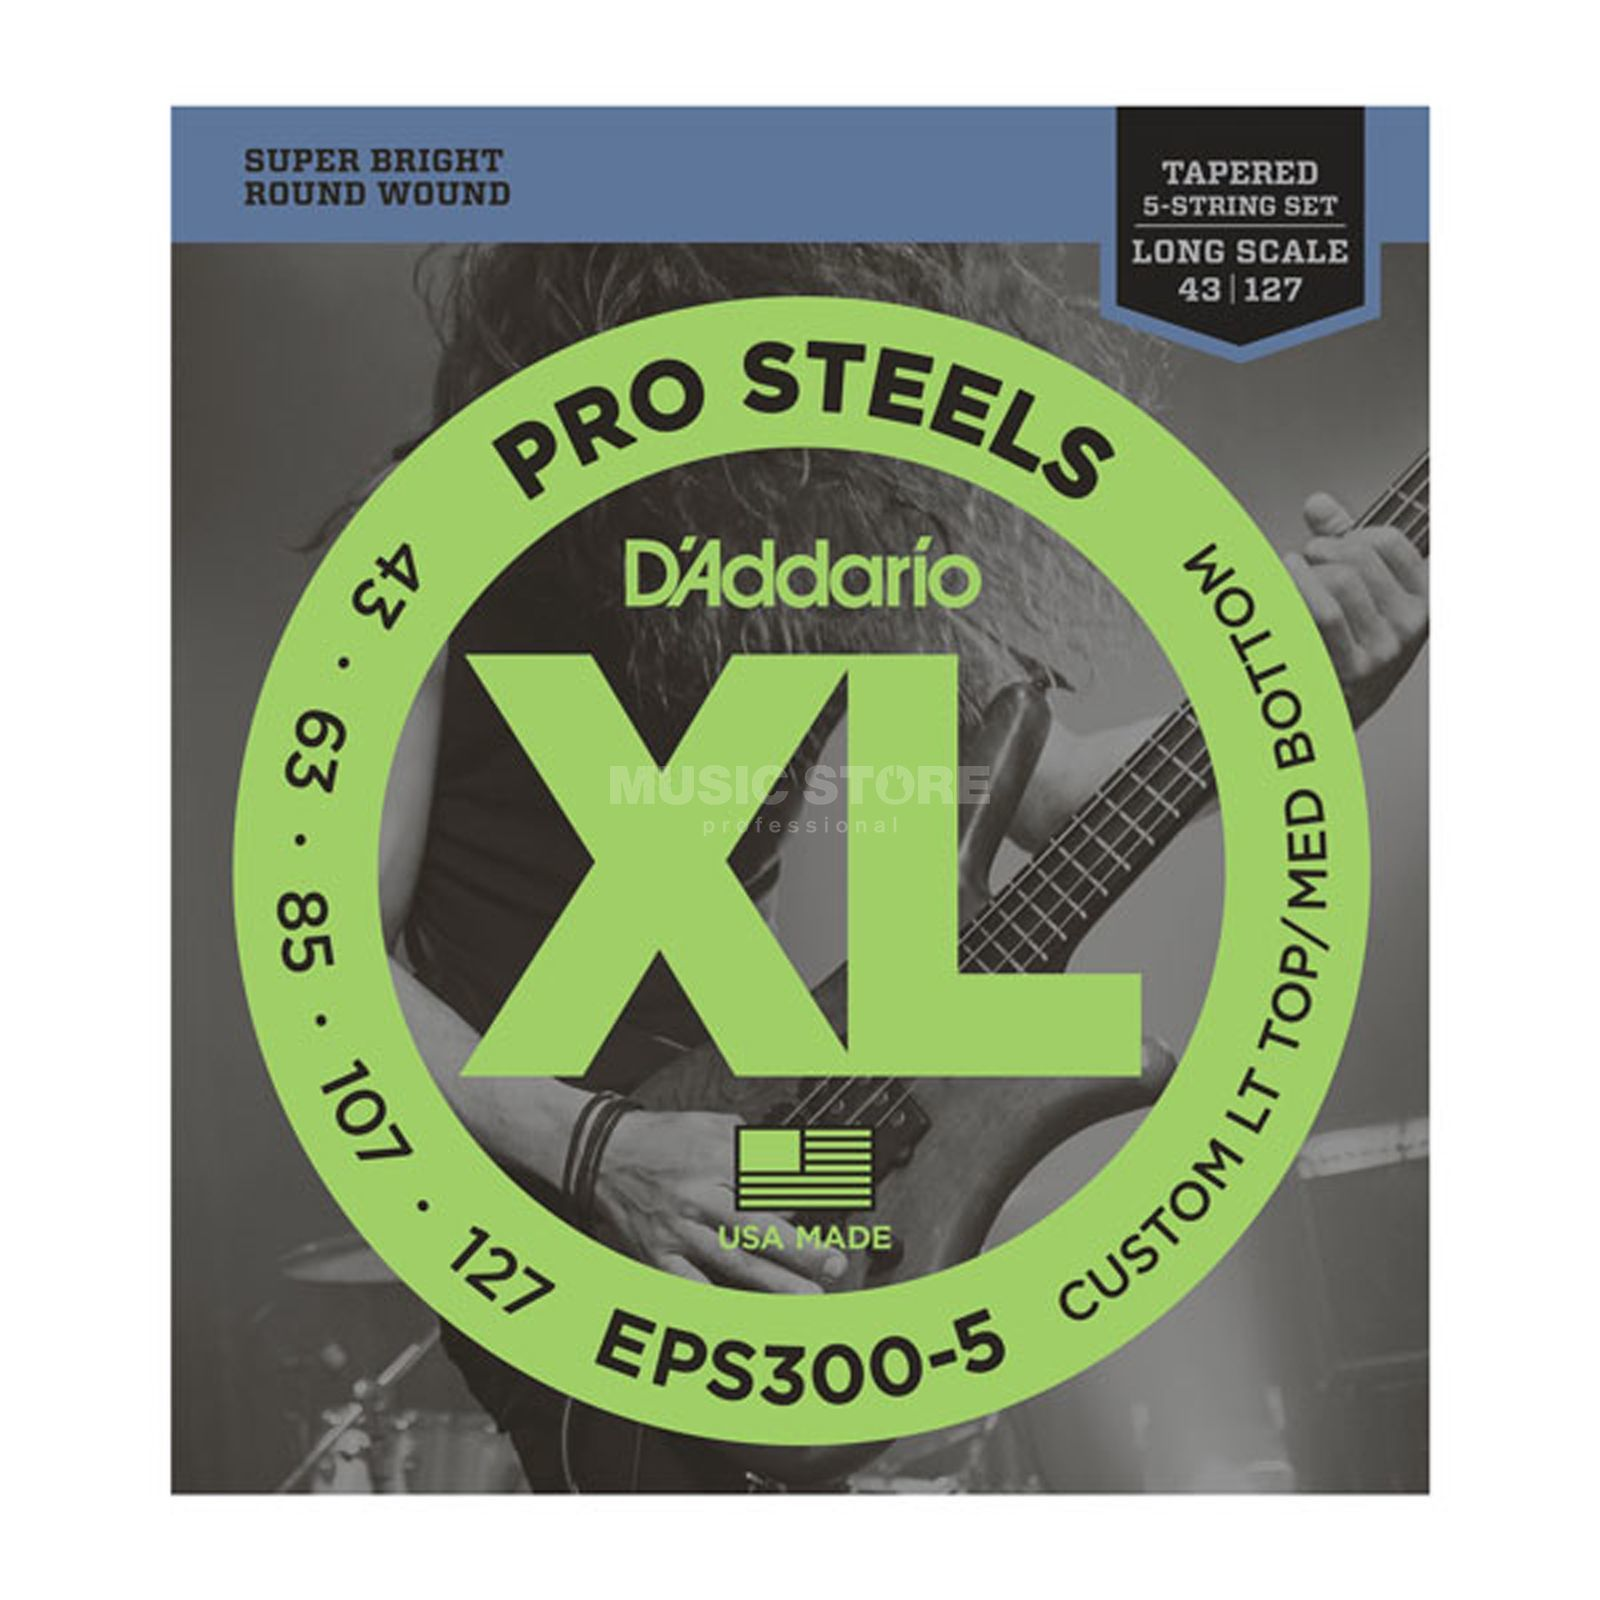 D'Addario Bass Strings Pro Steels 43-130 43-60-85-107-130, EPS300-5 Zdjęcie produktu